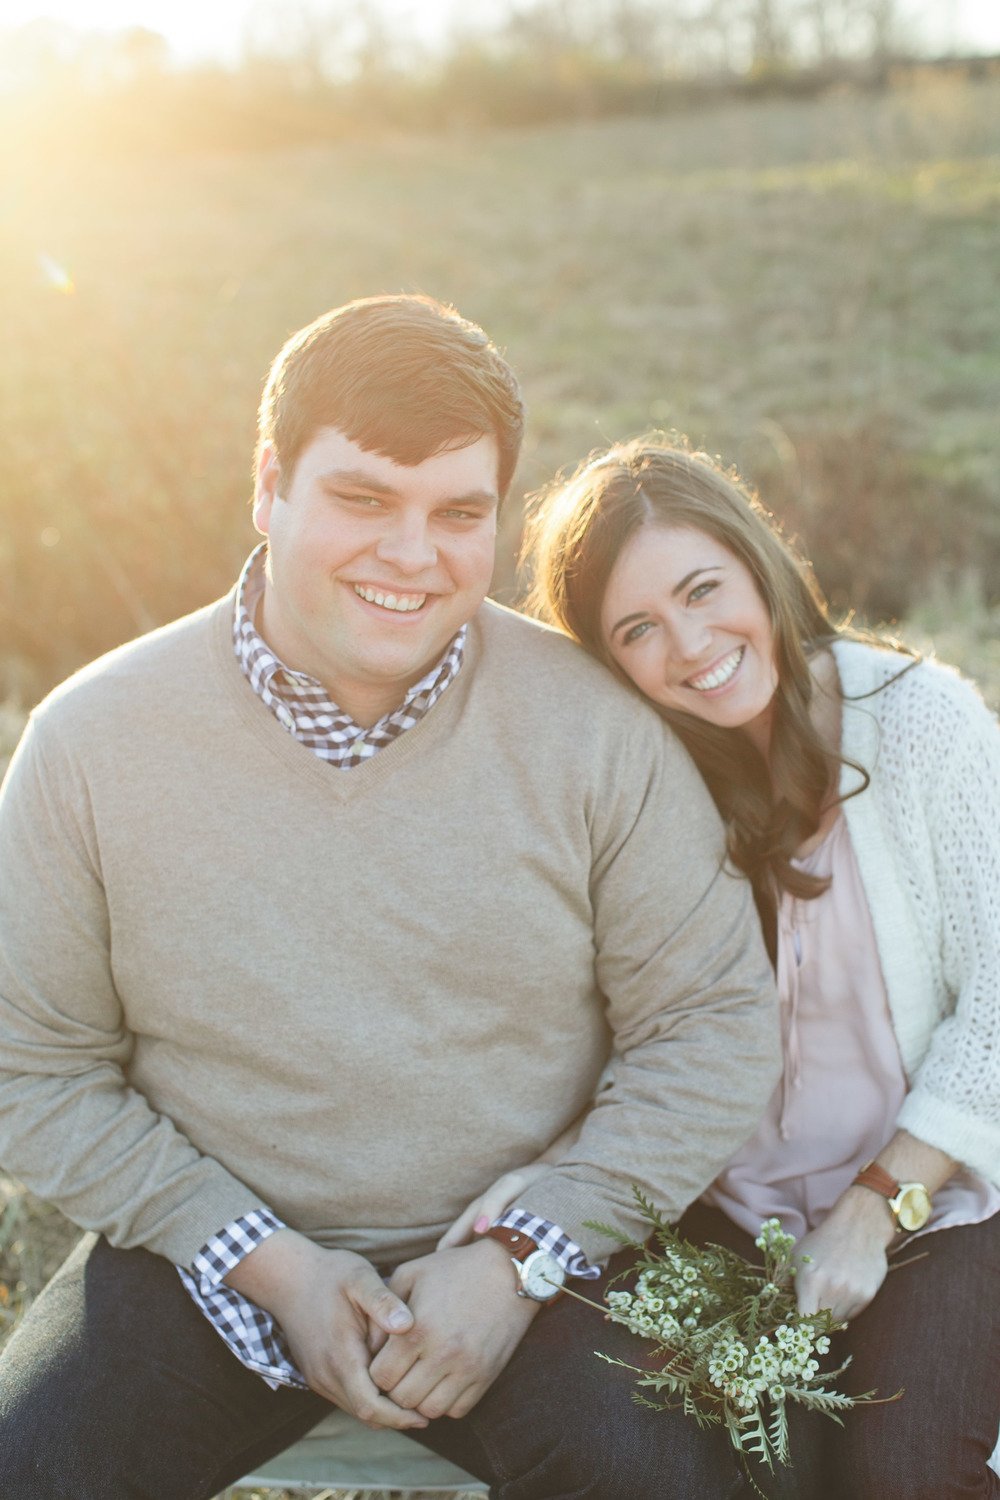 Atlanta-Engagement-Photographer-Athens-Georgia-Jittery-Joes-downtown-Athens-Founders-Memorial-Garden-41.jpg